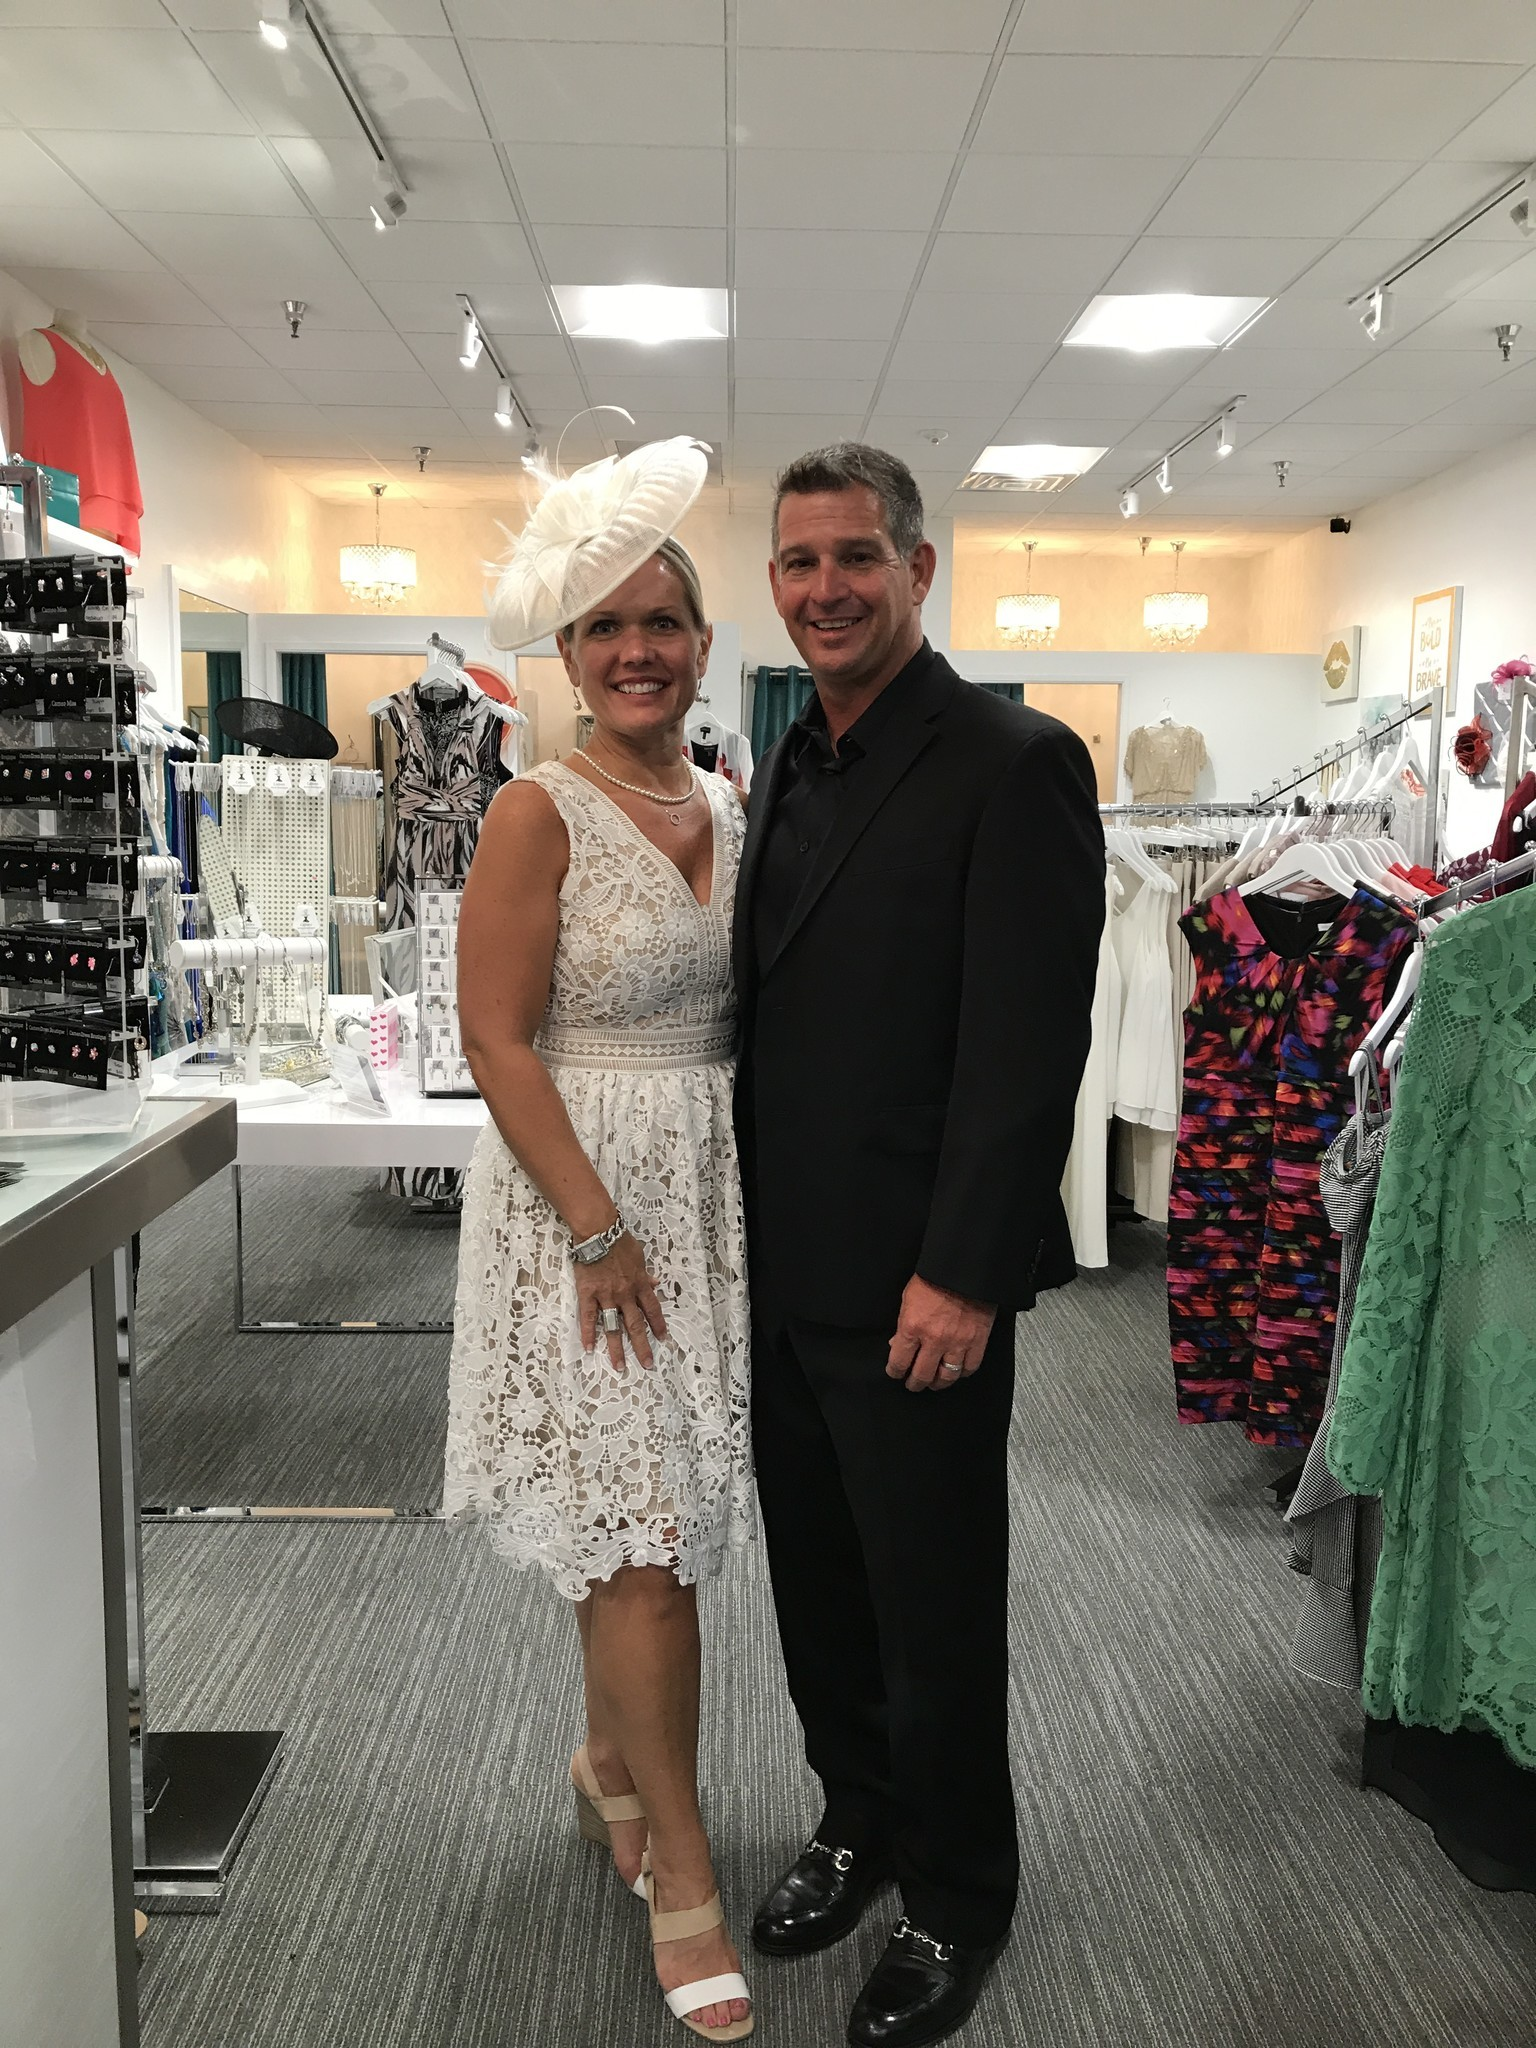 Cameo Dress Boutique owner Rachel Justice-Crowder and her husband Andy.